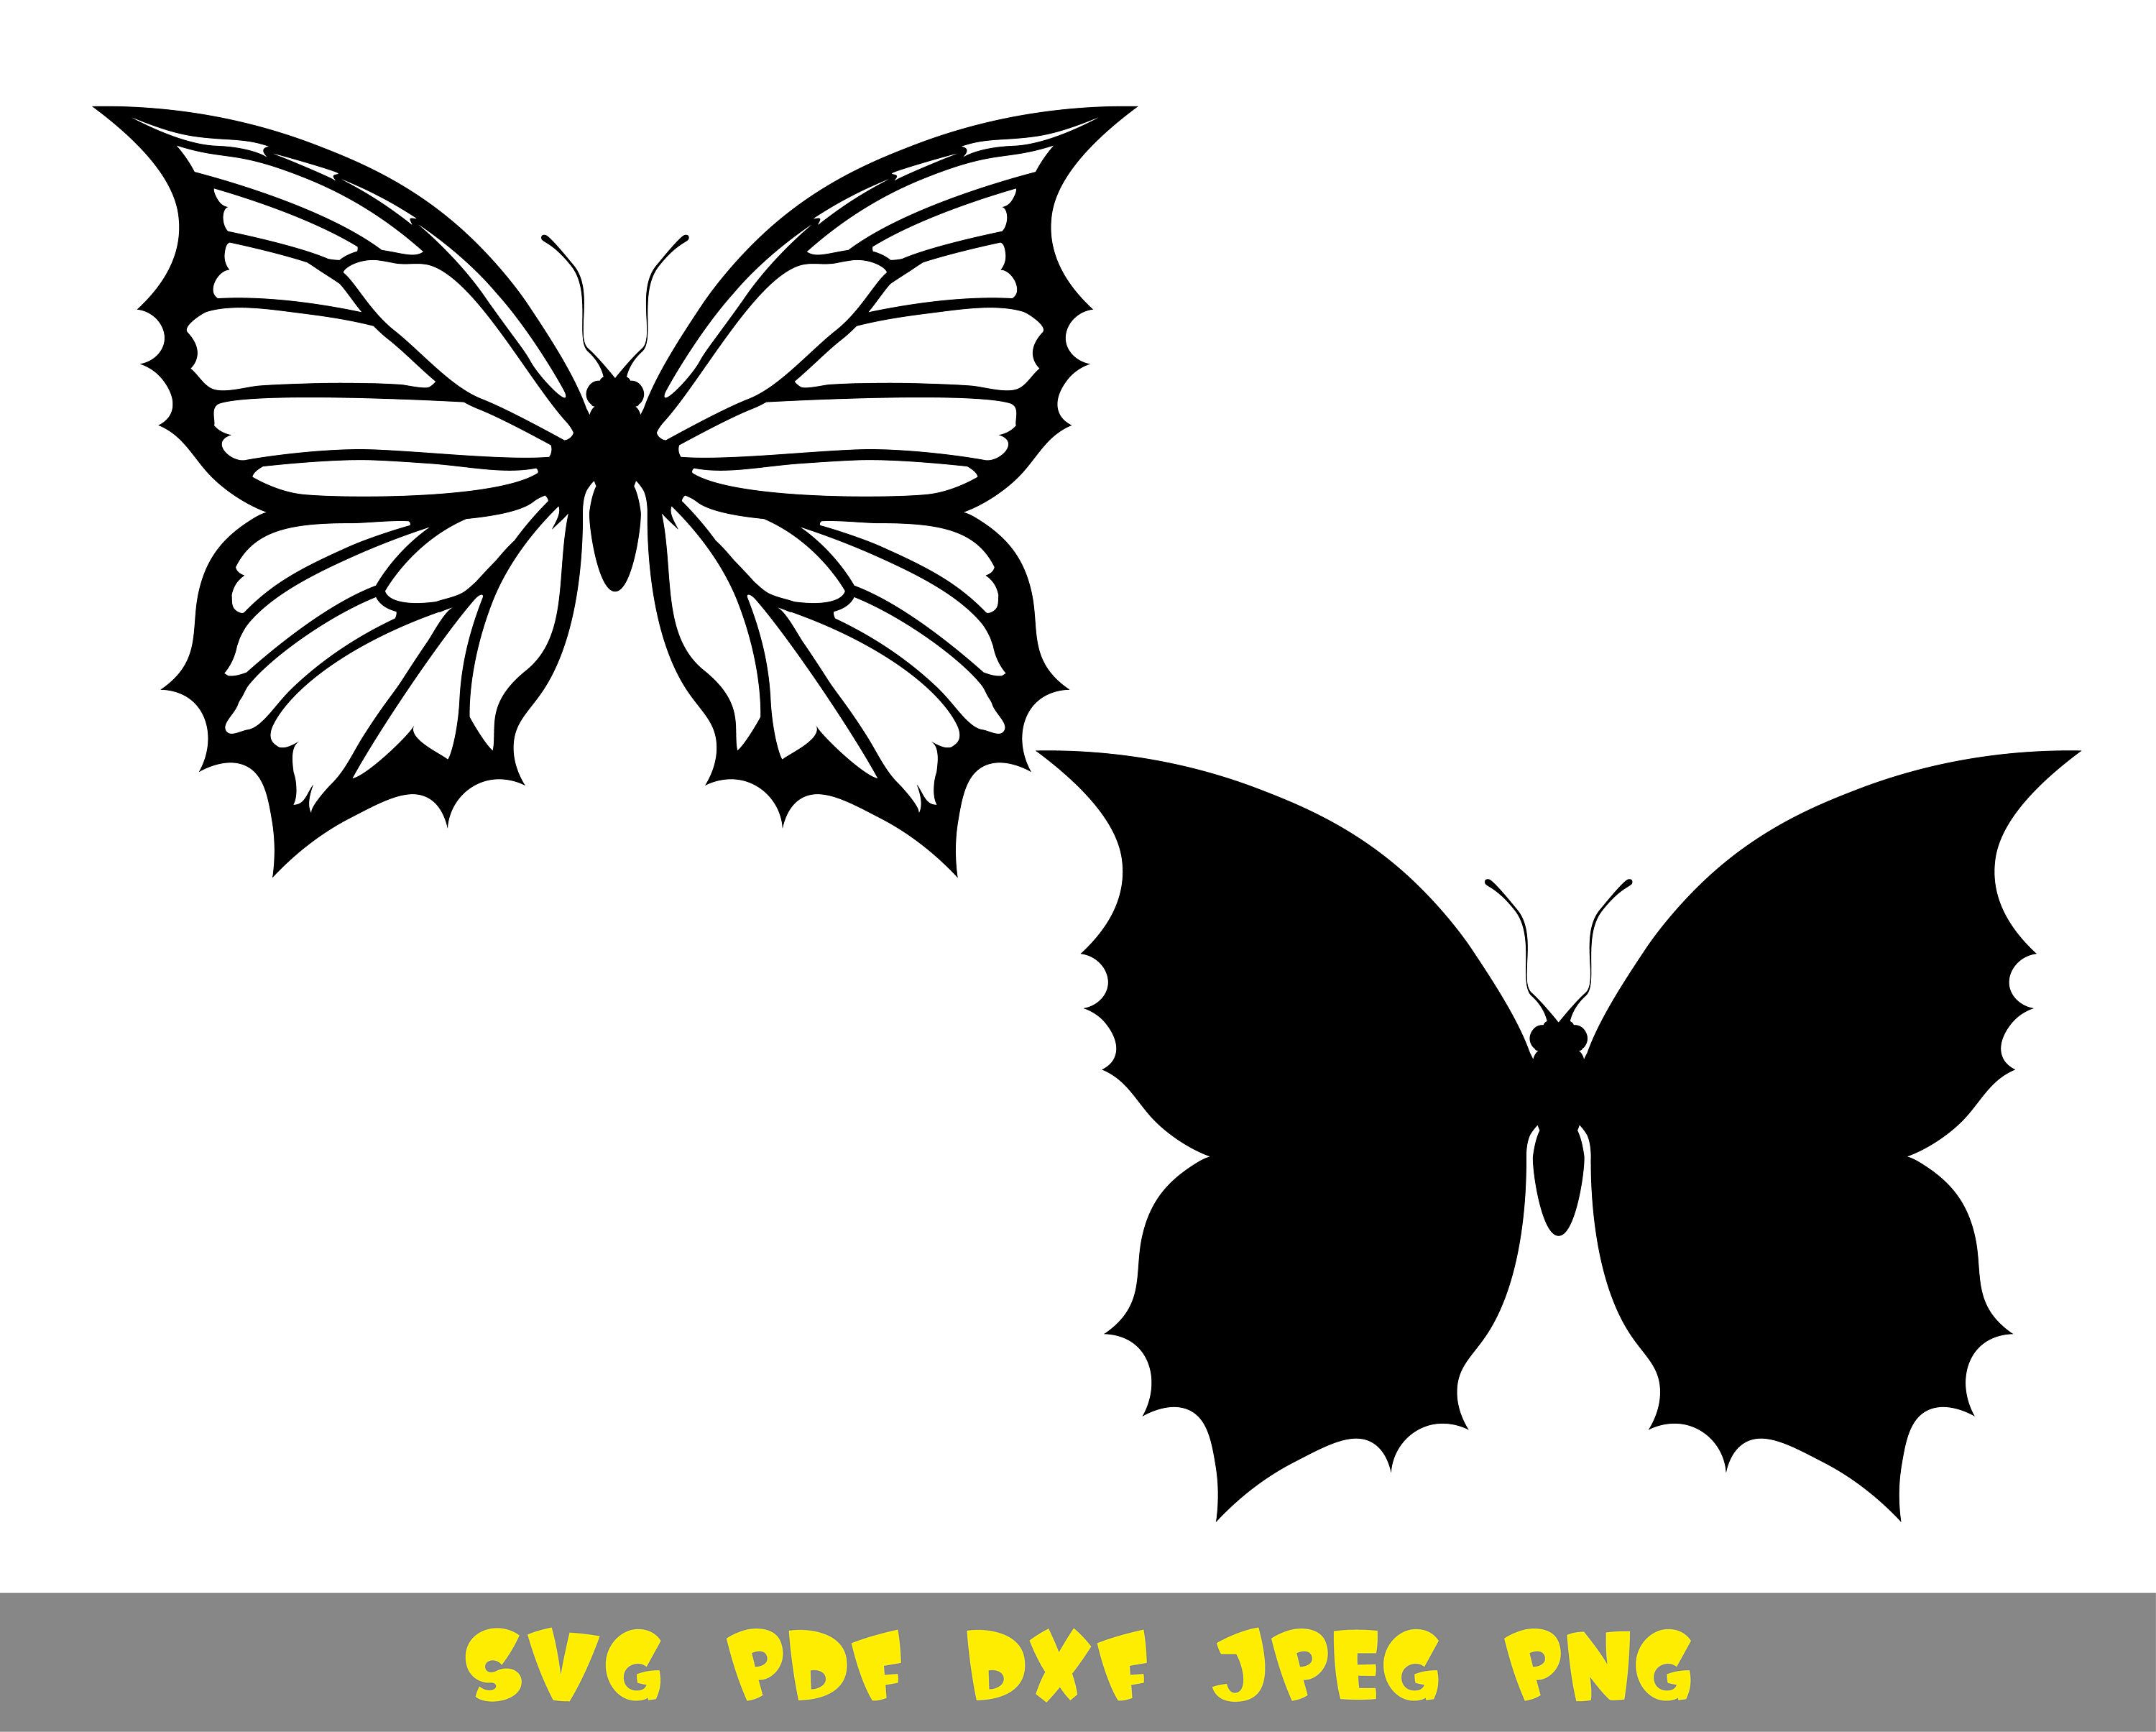 Butterfly Silhouette Svg Png Dxf Pdf Jpg Files In 2021 Silhouette Clip Art Butterflies Svg Flower Outline